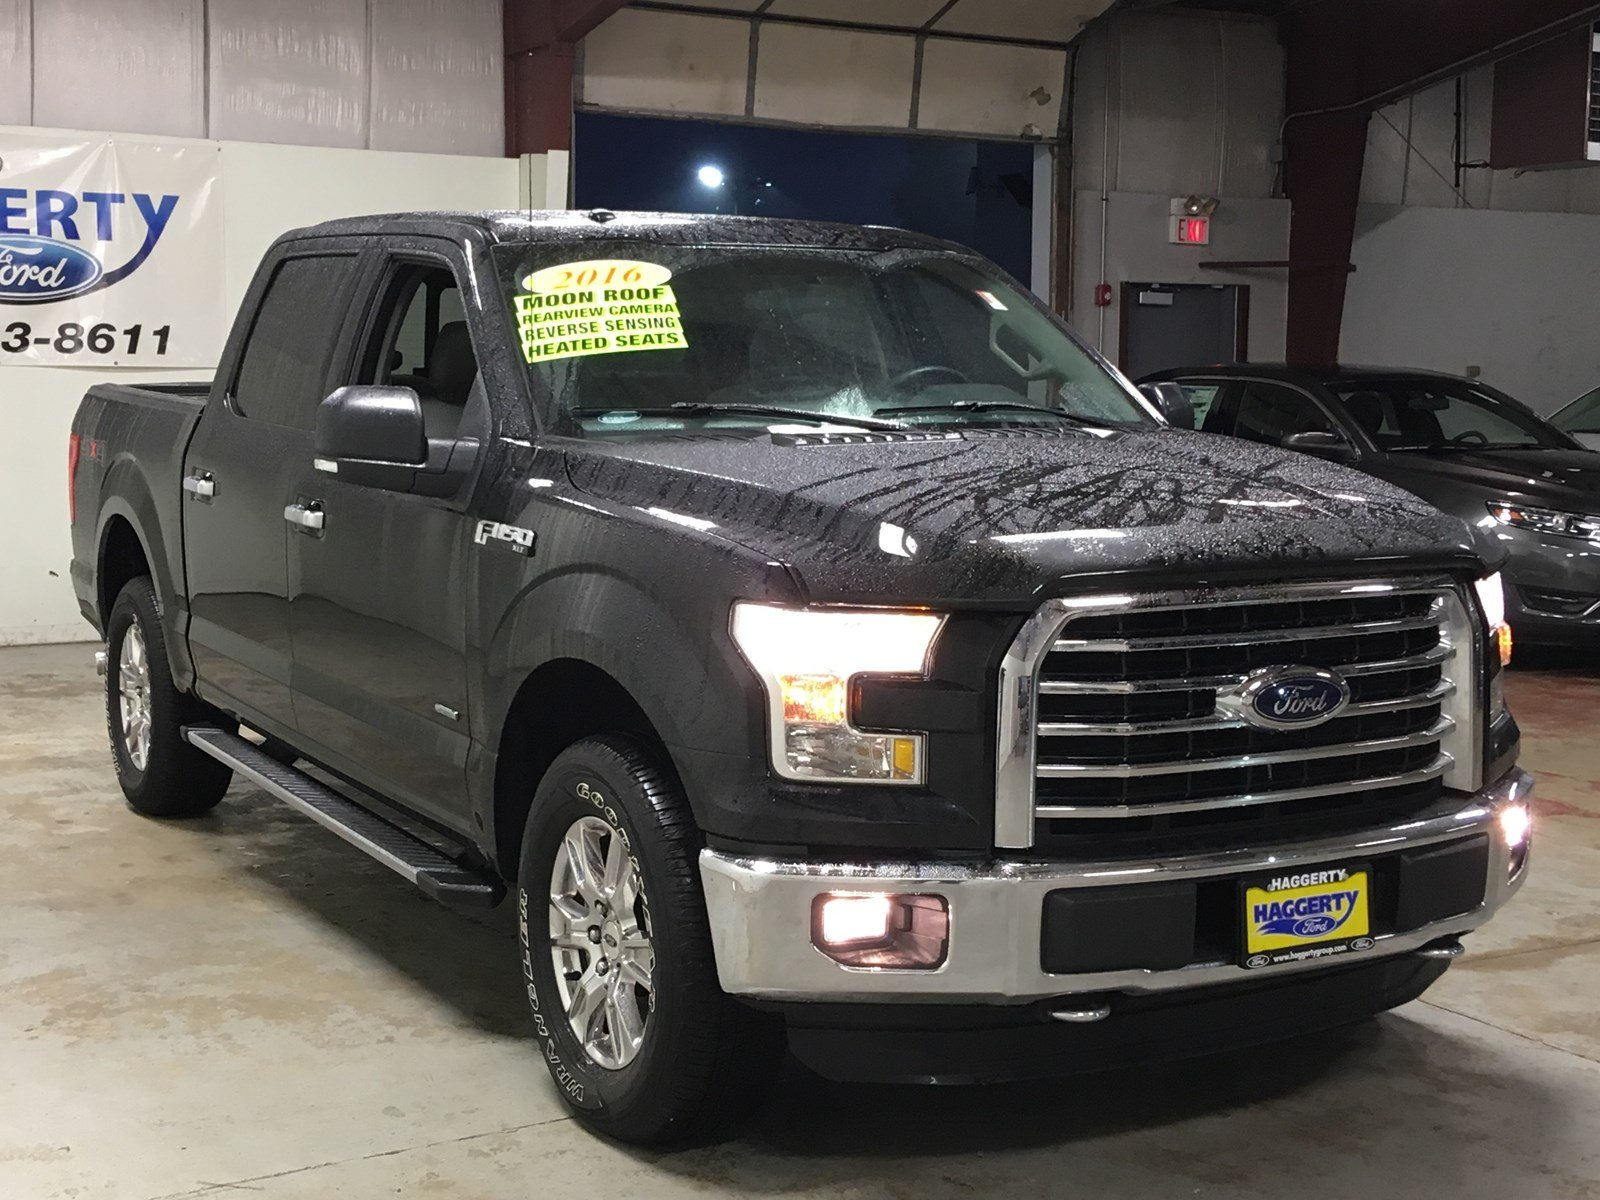 Certified Pre-Owned 2016 Ford F-150 XLT 302A Crew Cab Crew ...